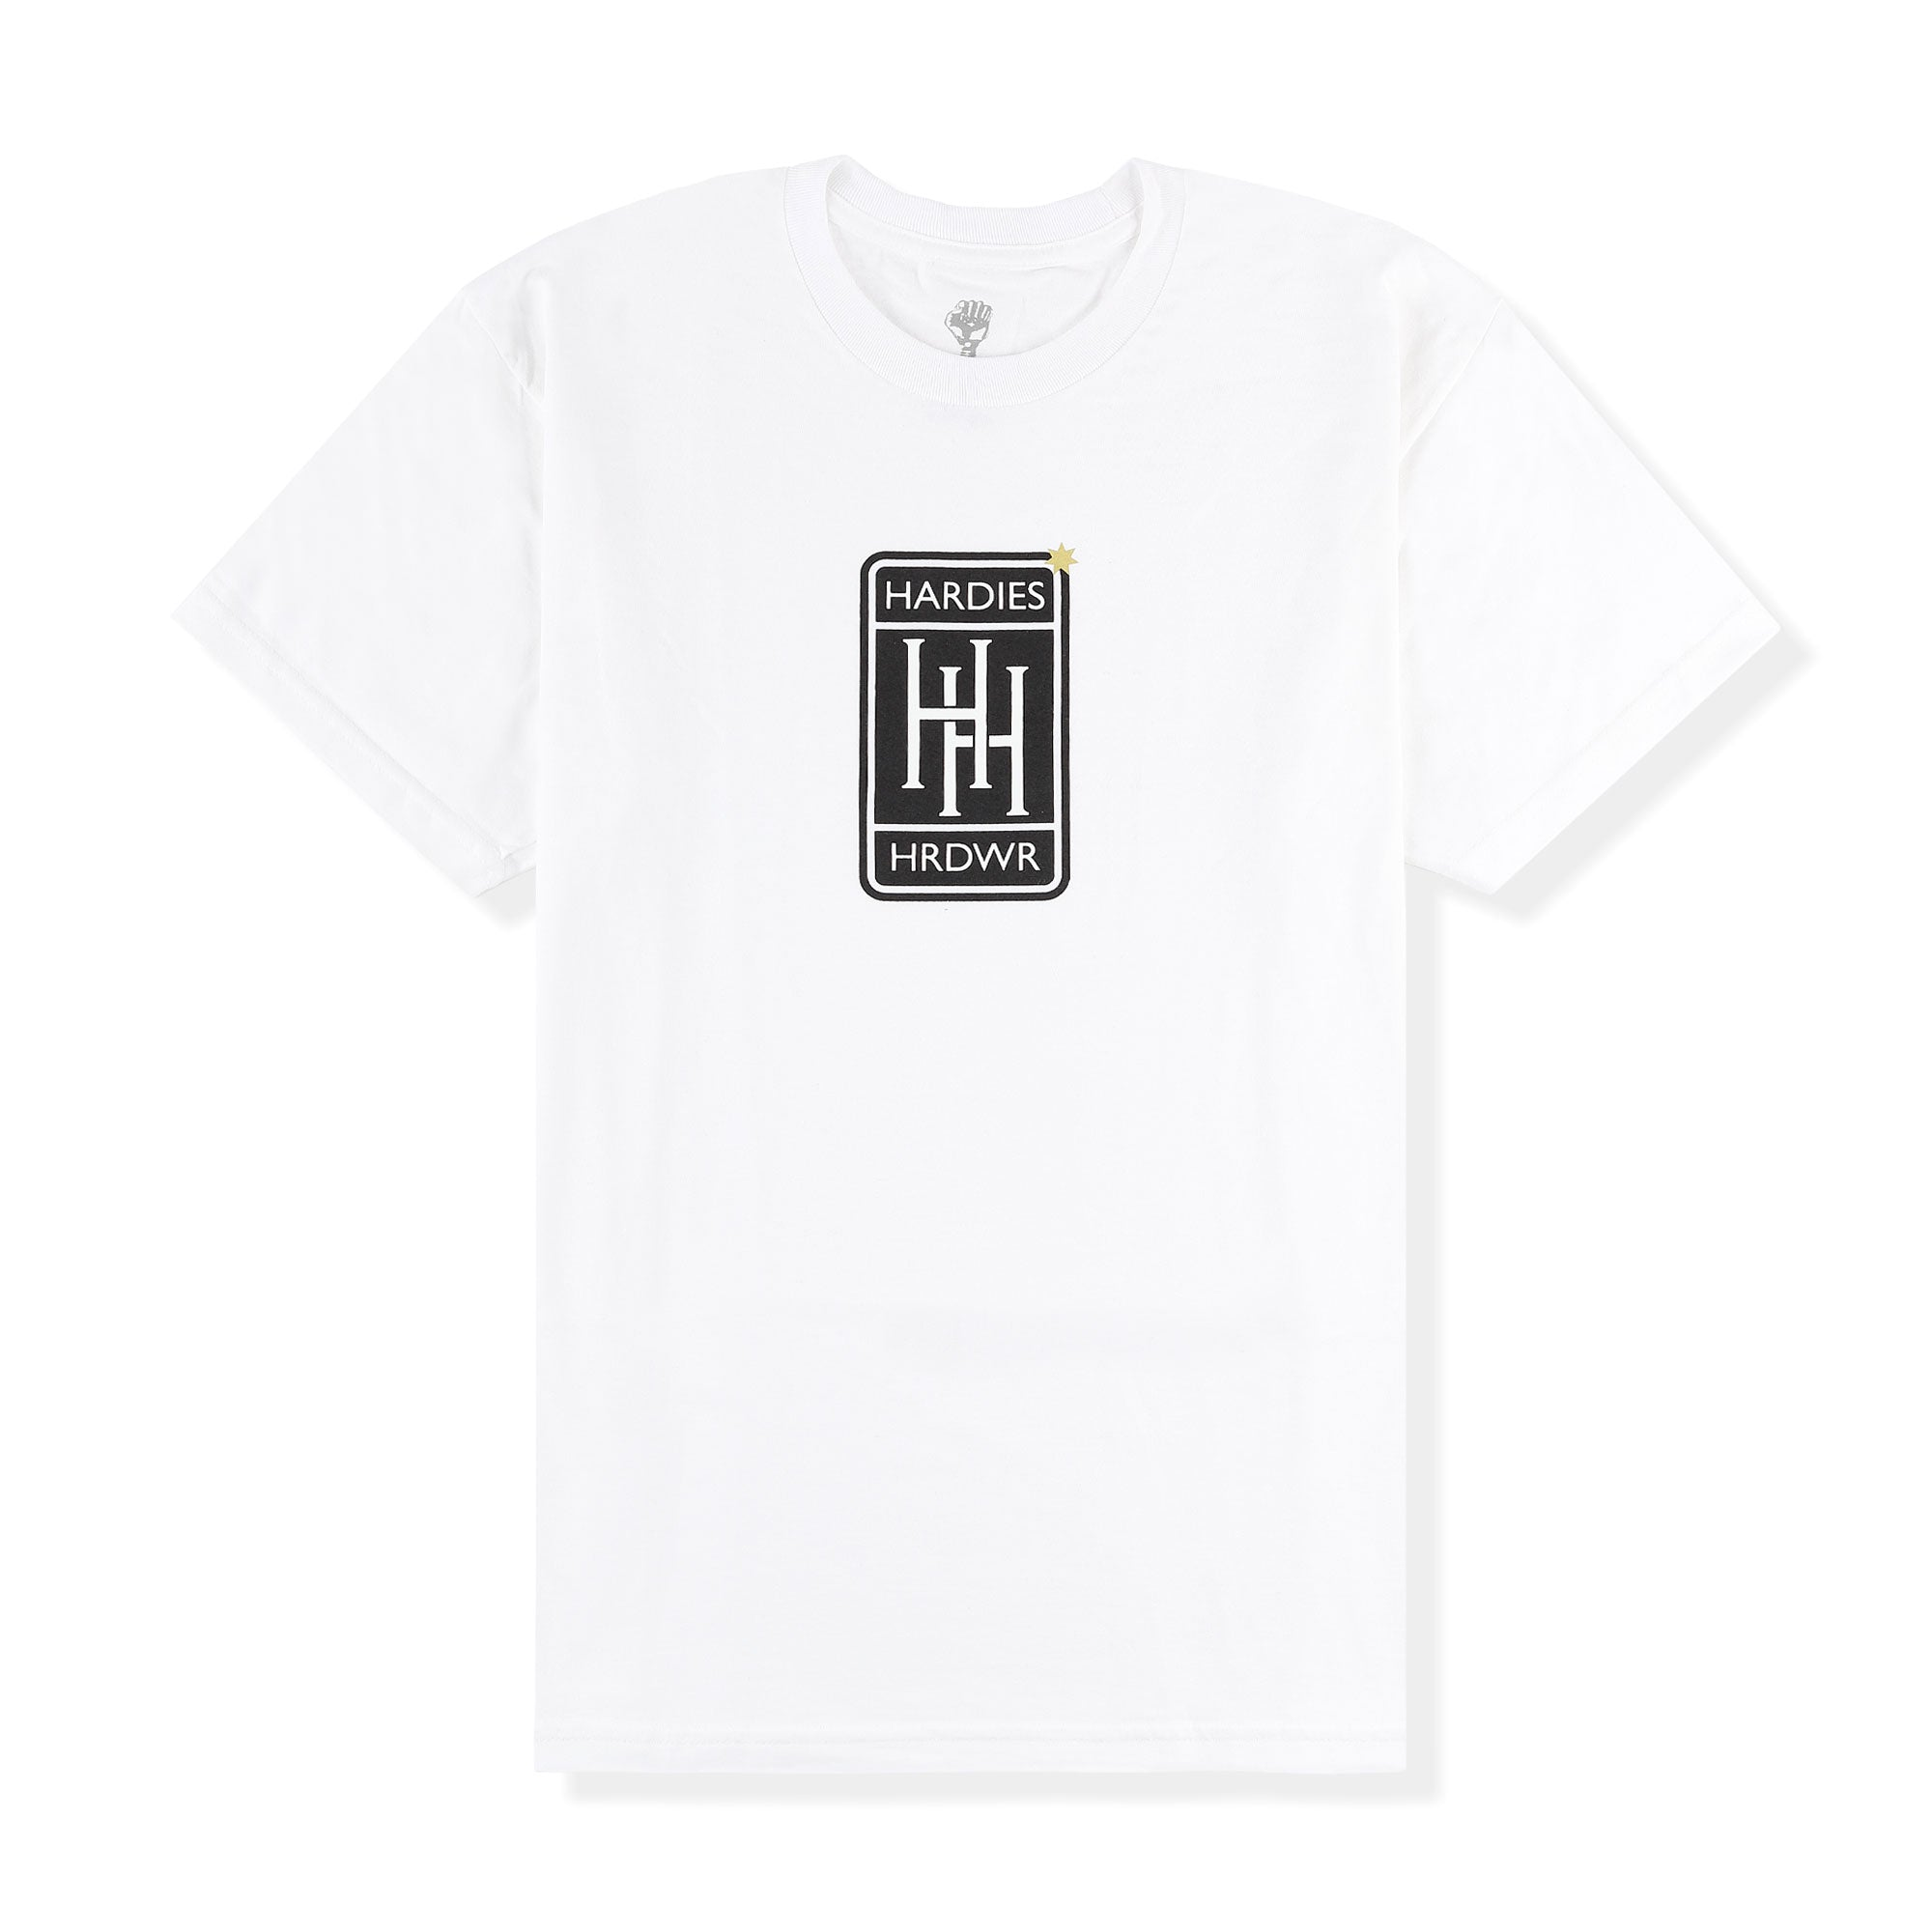 Hardies Automobile Tee Product Photo #1